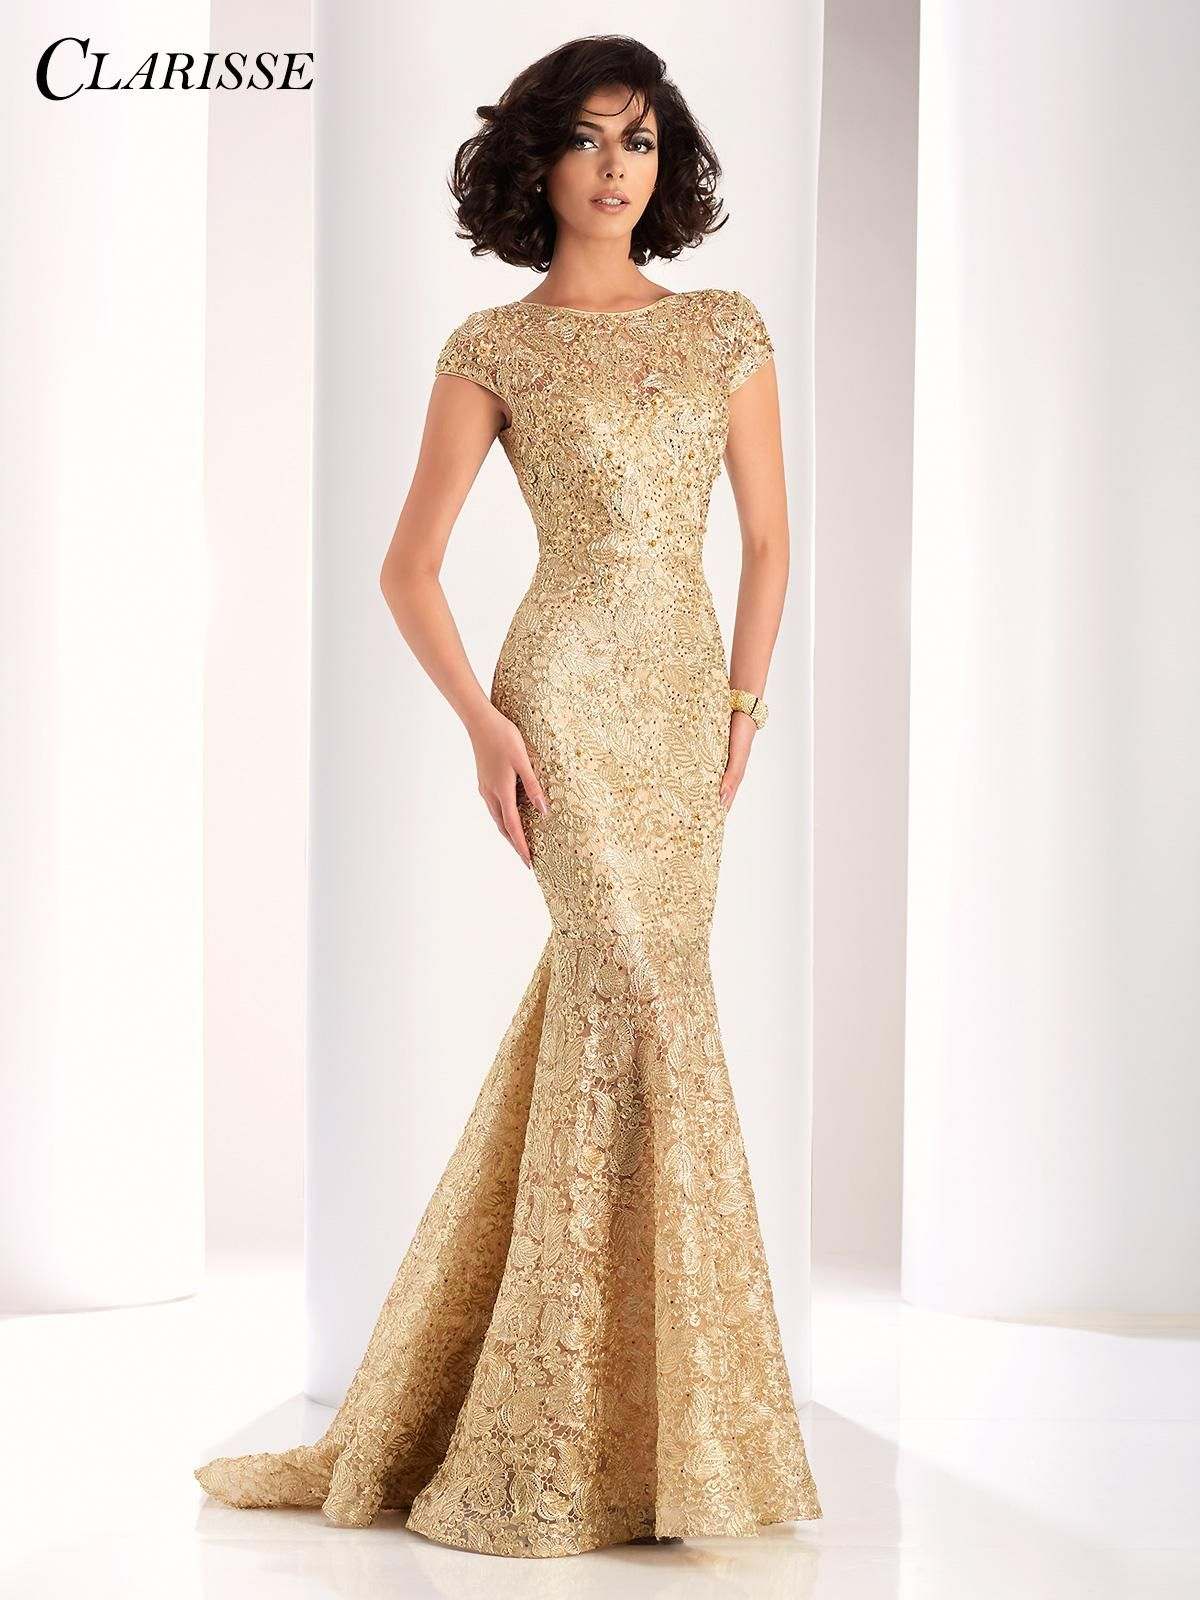 Style description clarisse prom gold capped sleeve lace